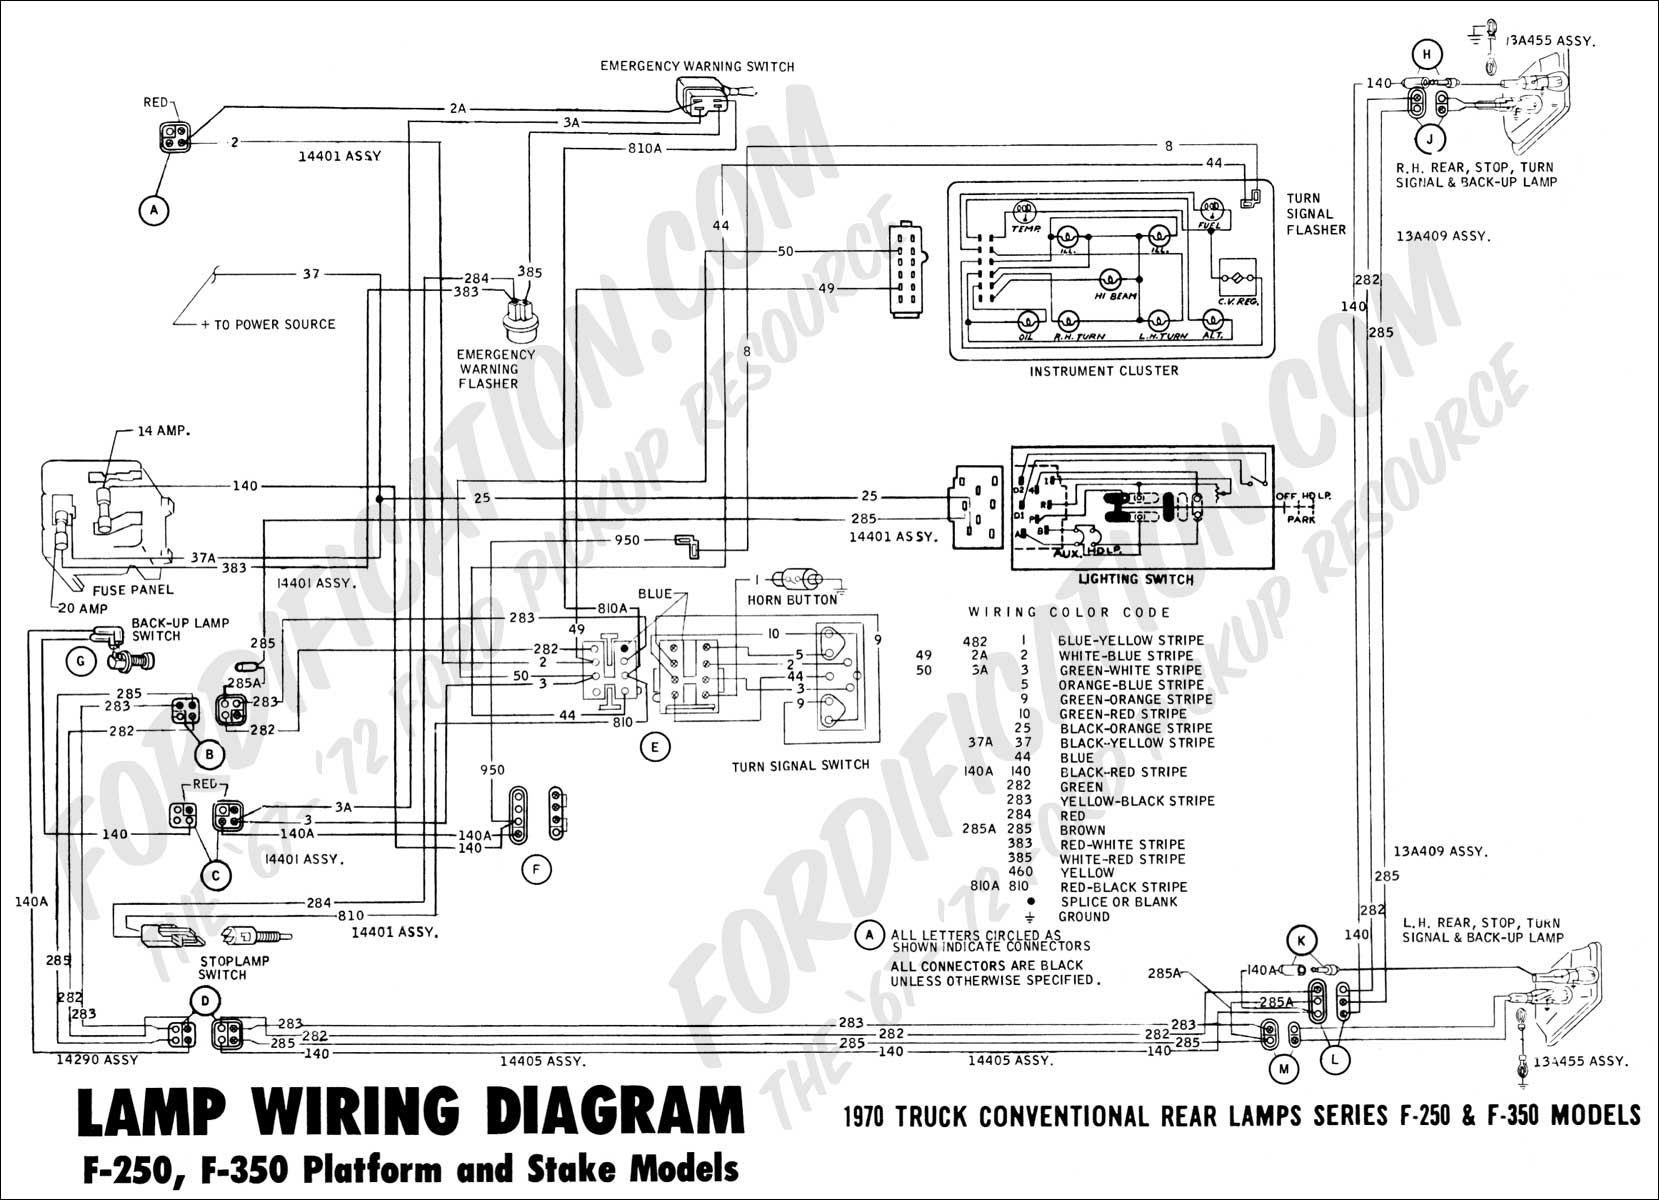 wiring diagram for 1979 jeep cj 7 ford truck technical drawings and schematics section h wiring diagram for 1979 dodge d150 #7